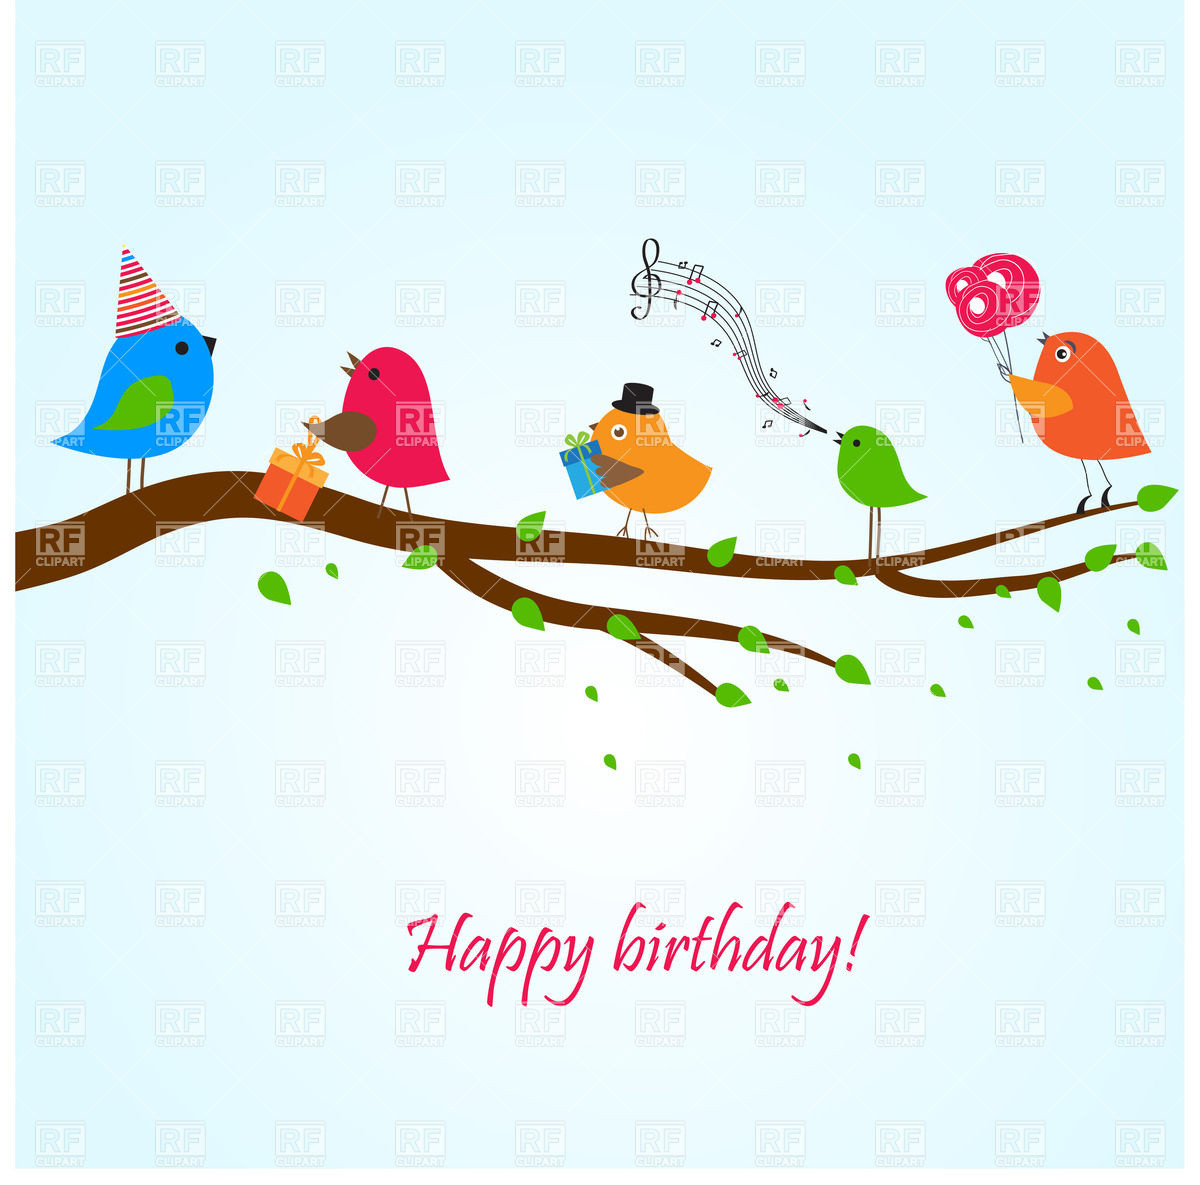 Best ideas about Birthday Wishes Clip Art . Save or Pin Birthday Wishes Clip Art Cliparts Now.